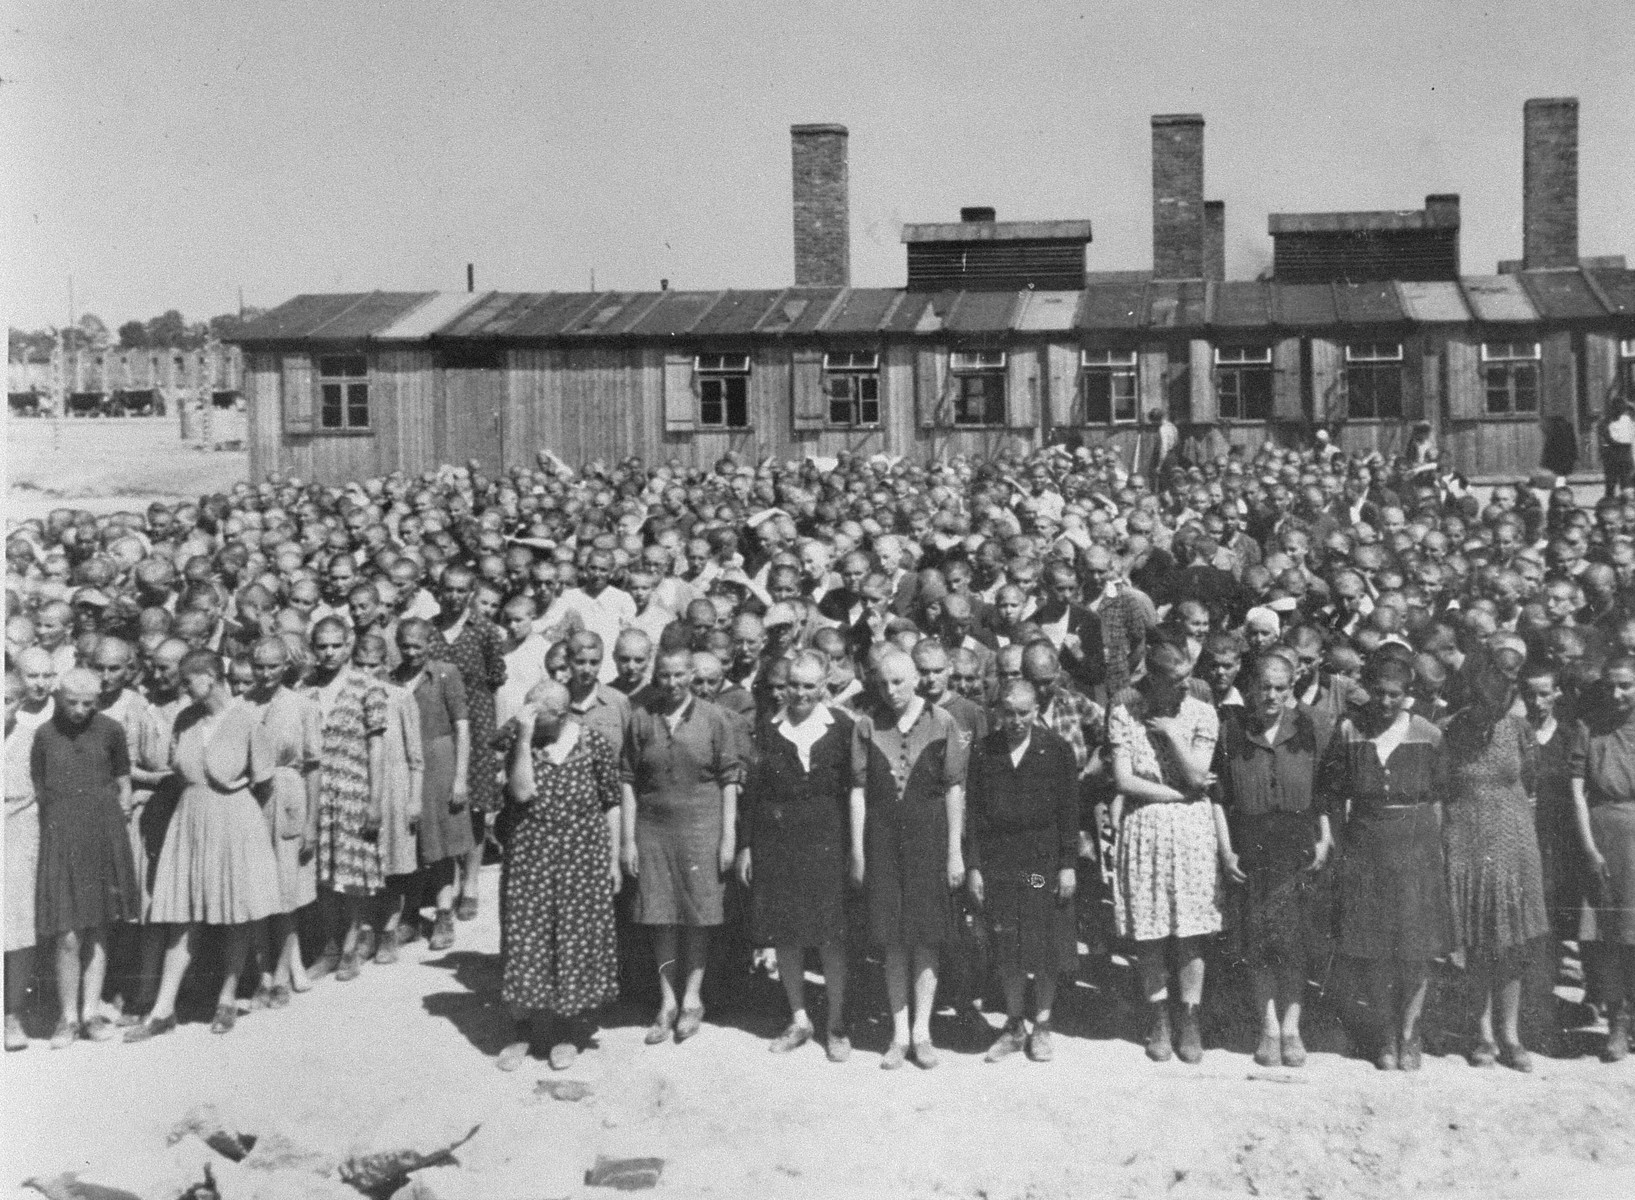 Jewish women from Subcarpathian Rus who have been selected for forced labor at Auschwitz-Birkenau, stand at a roll call in front of the kitchen.   Those pictured include Freda Egri, Ester Erszebet Egri, Rozsi Egri, Zseni Stern, Lili Jacob (first row, second from the left) Magda Roth, Eva Roth and Iren Roth (Magda's mother), and Josephine (Pollak) Fodor (left side along center aisle, wearing a solid colored dark dress, behind woman in light colored dress).